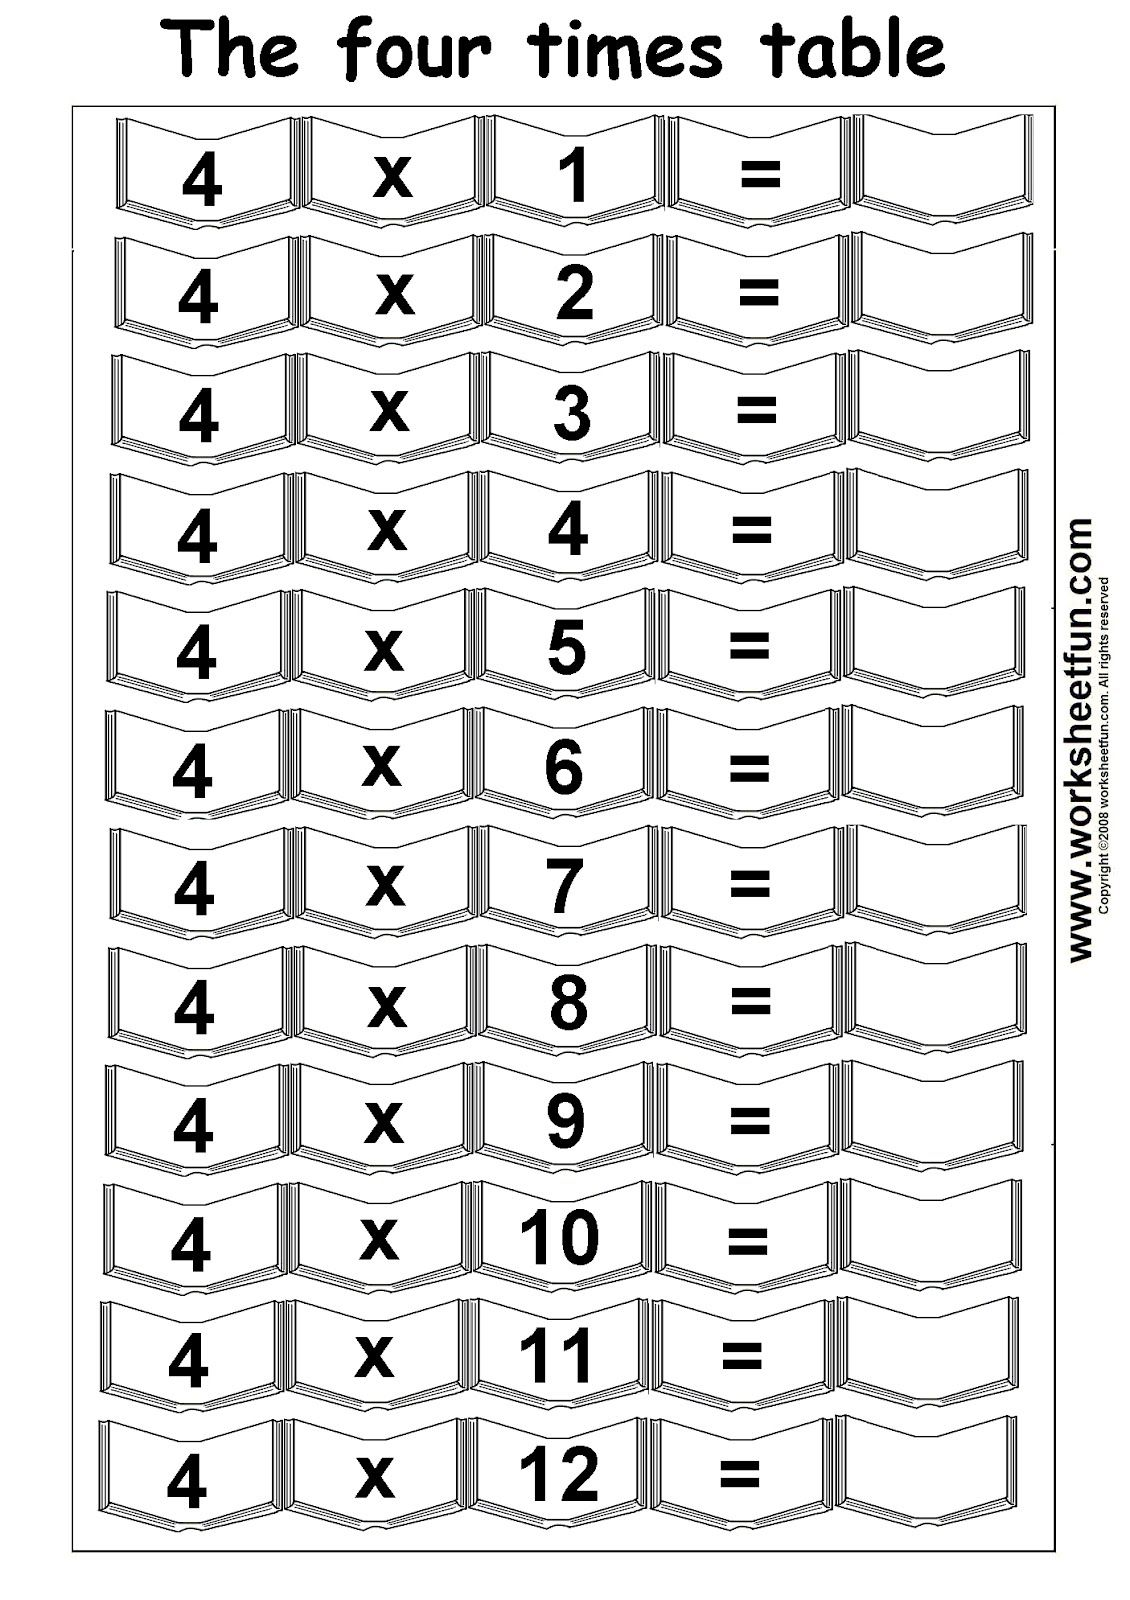 Teach Child How To Read Printable Math Times Table Worksheets